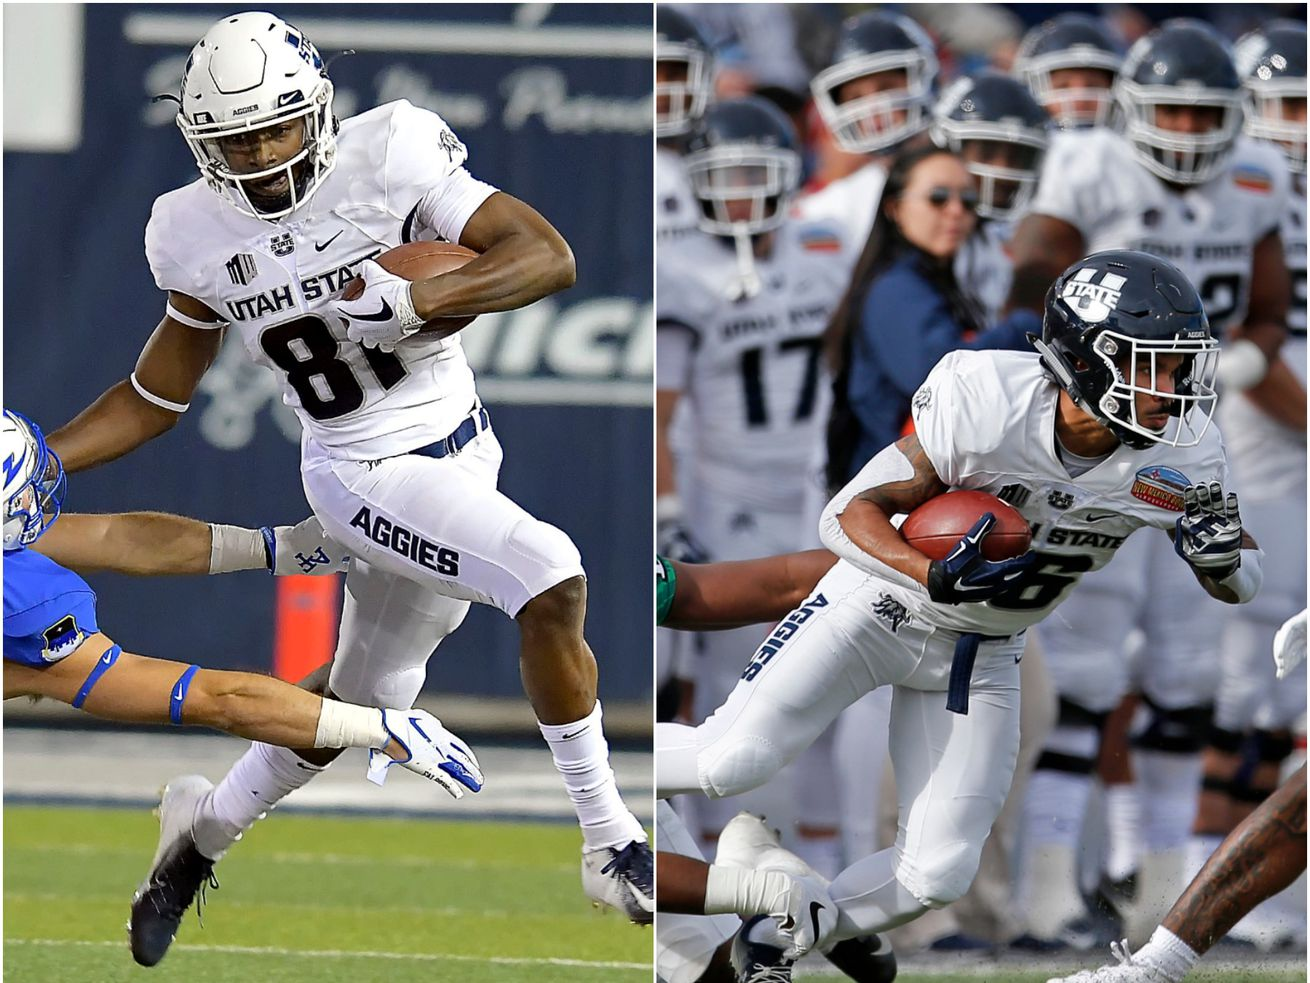 Inside the approach of Utah State's elite return specialists, Savon Scarver and Jordan Nathan